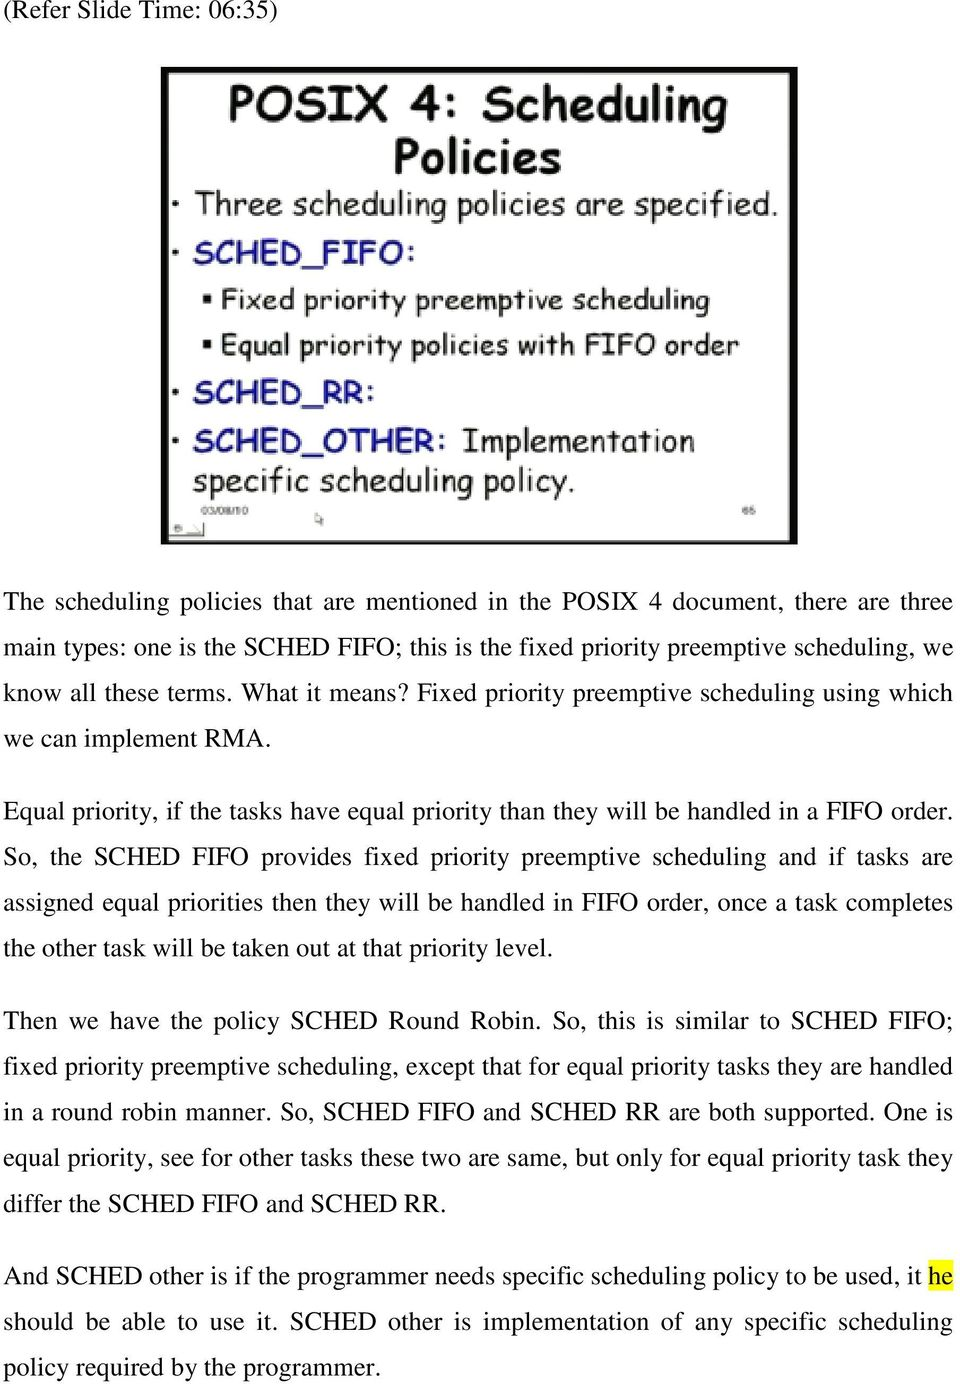 So, the SCHED FIFO provides fixed priority preemptive scheduling and if tasks are assigned equal priorities then they will be handled in FIFO order, once a task completes the other task will be taken